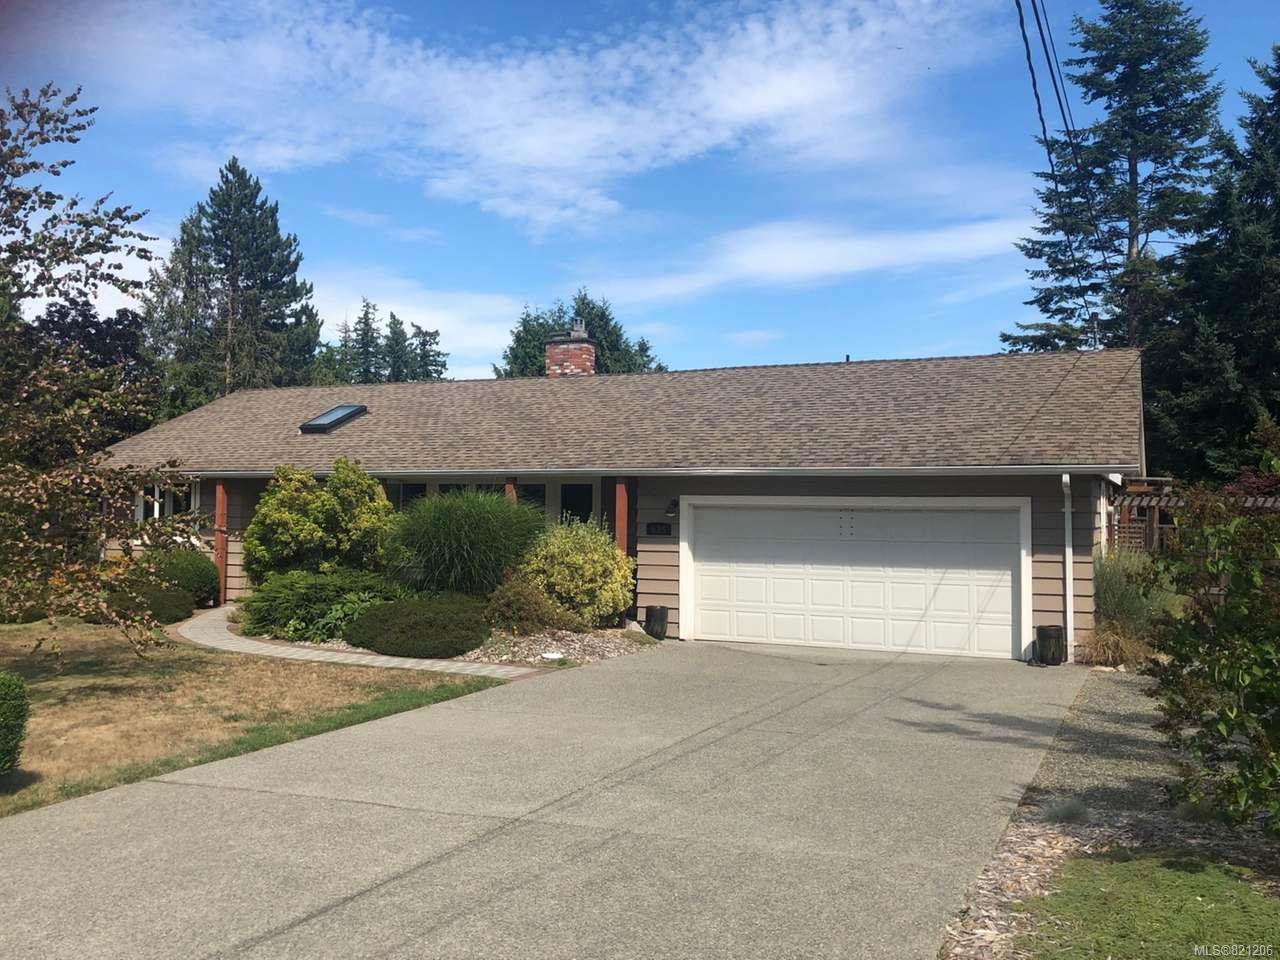 Main Photo: 625 HAWTHORNE Rise in FRENCH CREEK: PQ French Creek House for sale (Parksville/Qualicum)  : MLS®# 821206